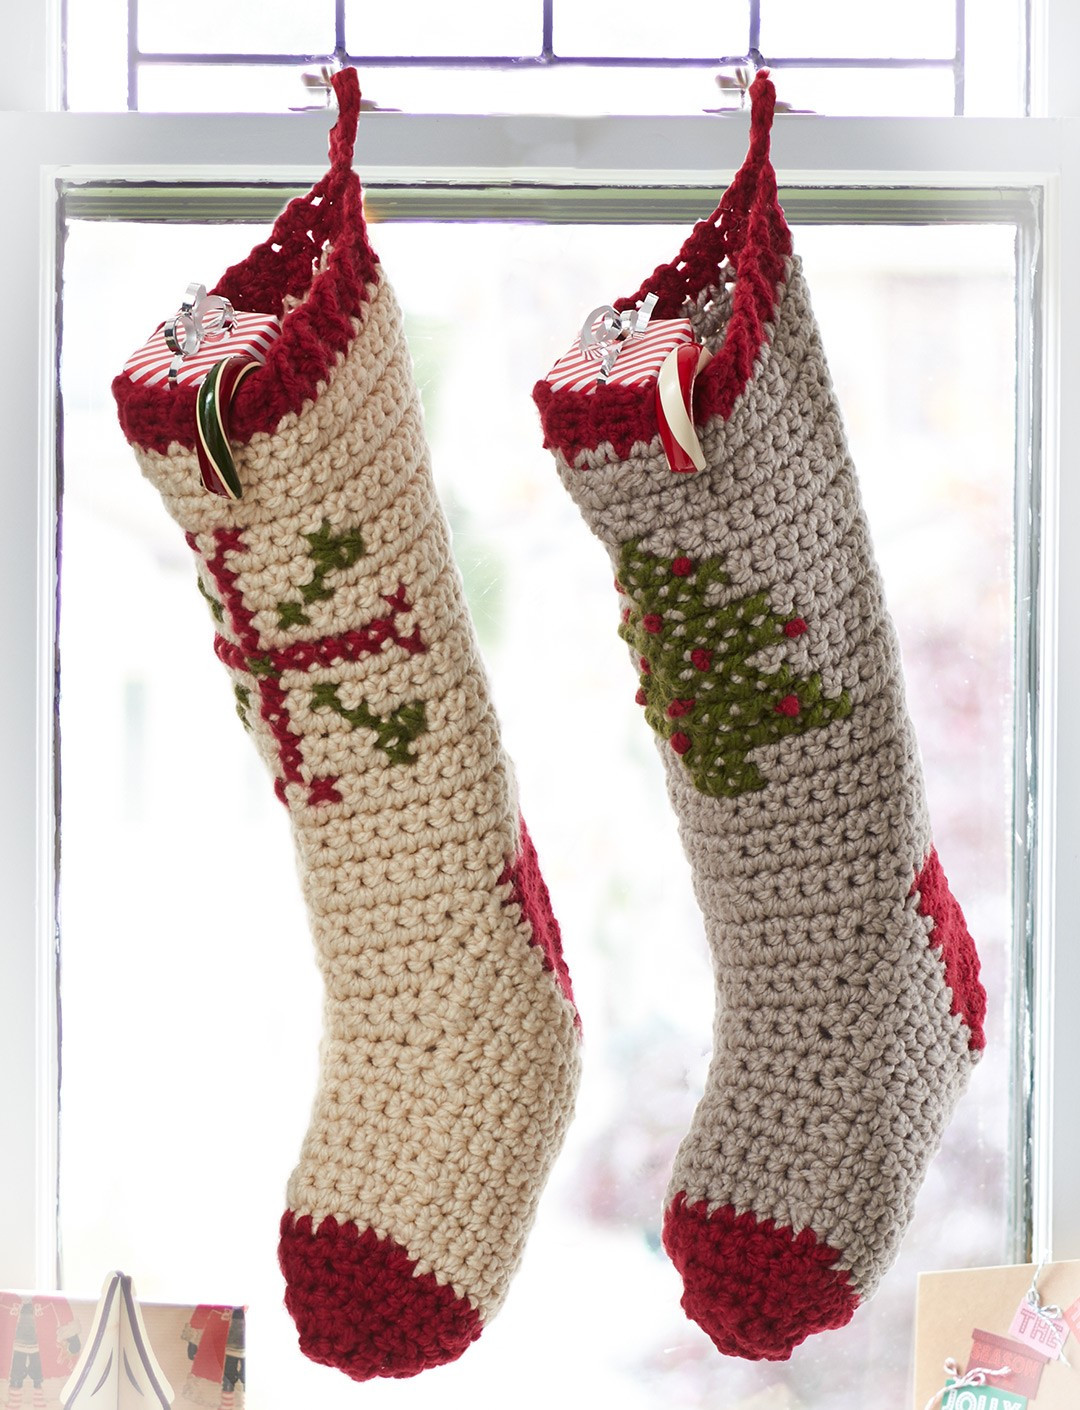 Inspirational Bernat Cross Stitch Stockings Crochet Pattern Crochet Pattern for Christmas Stocking Of Lovely Christmas Stockings Crochet Pattern for Christmas Stocking